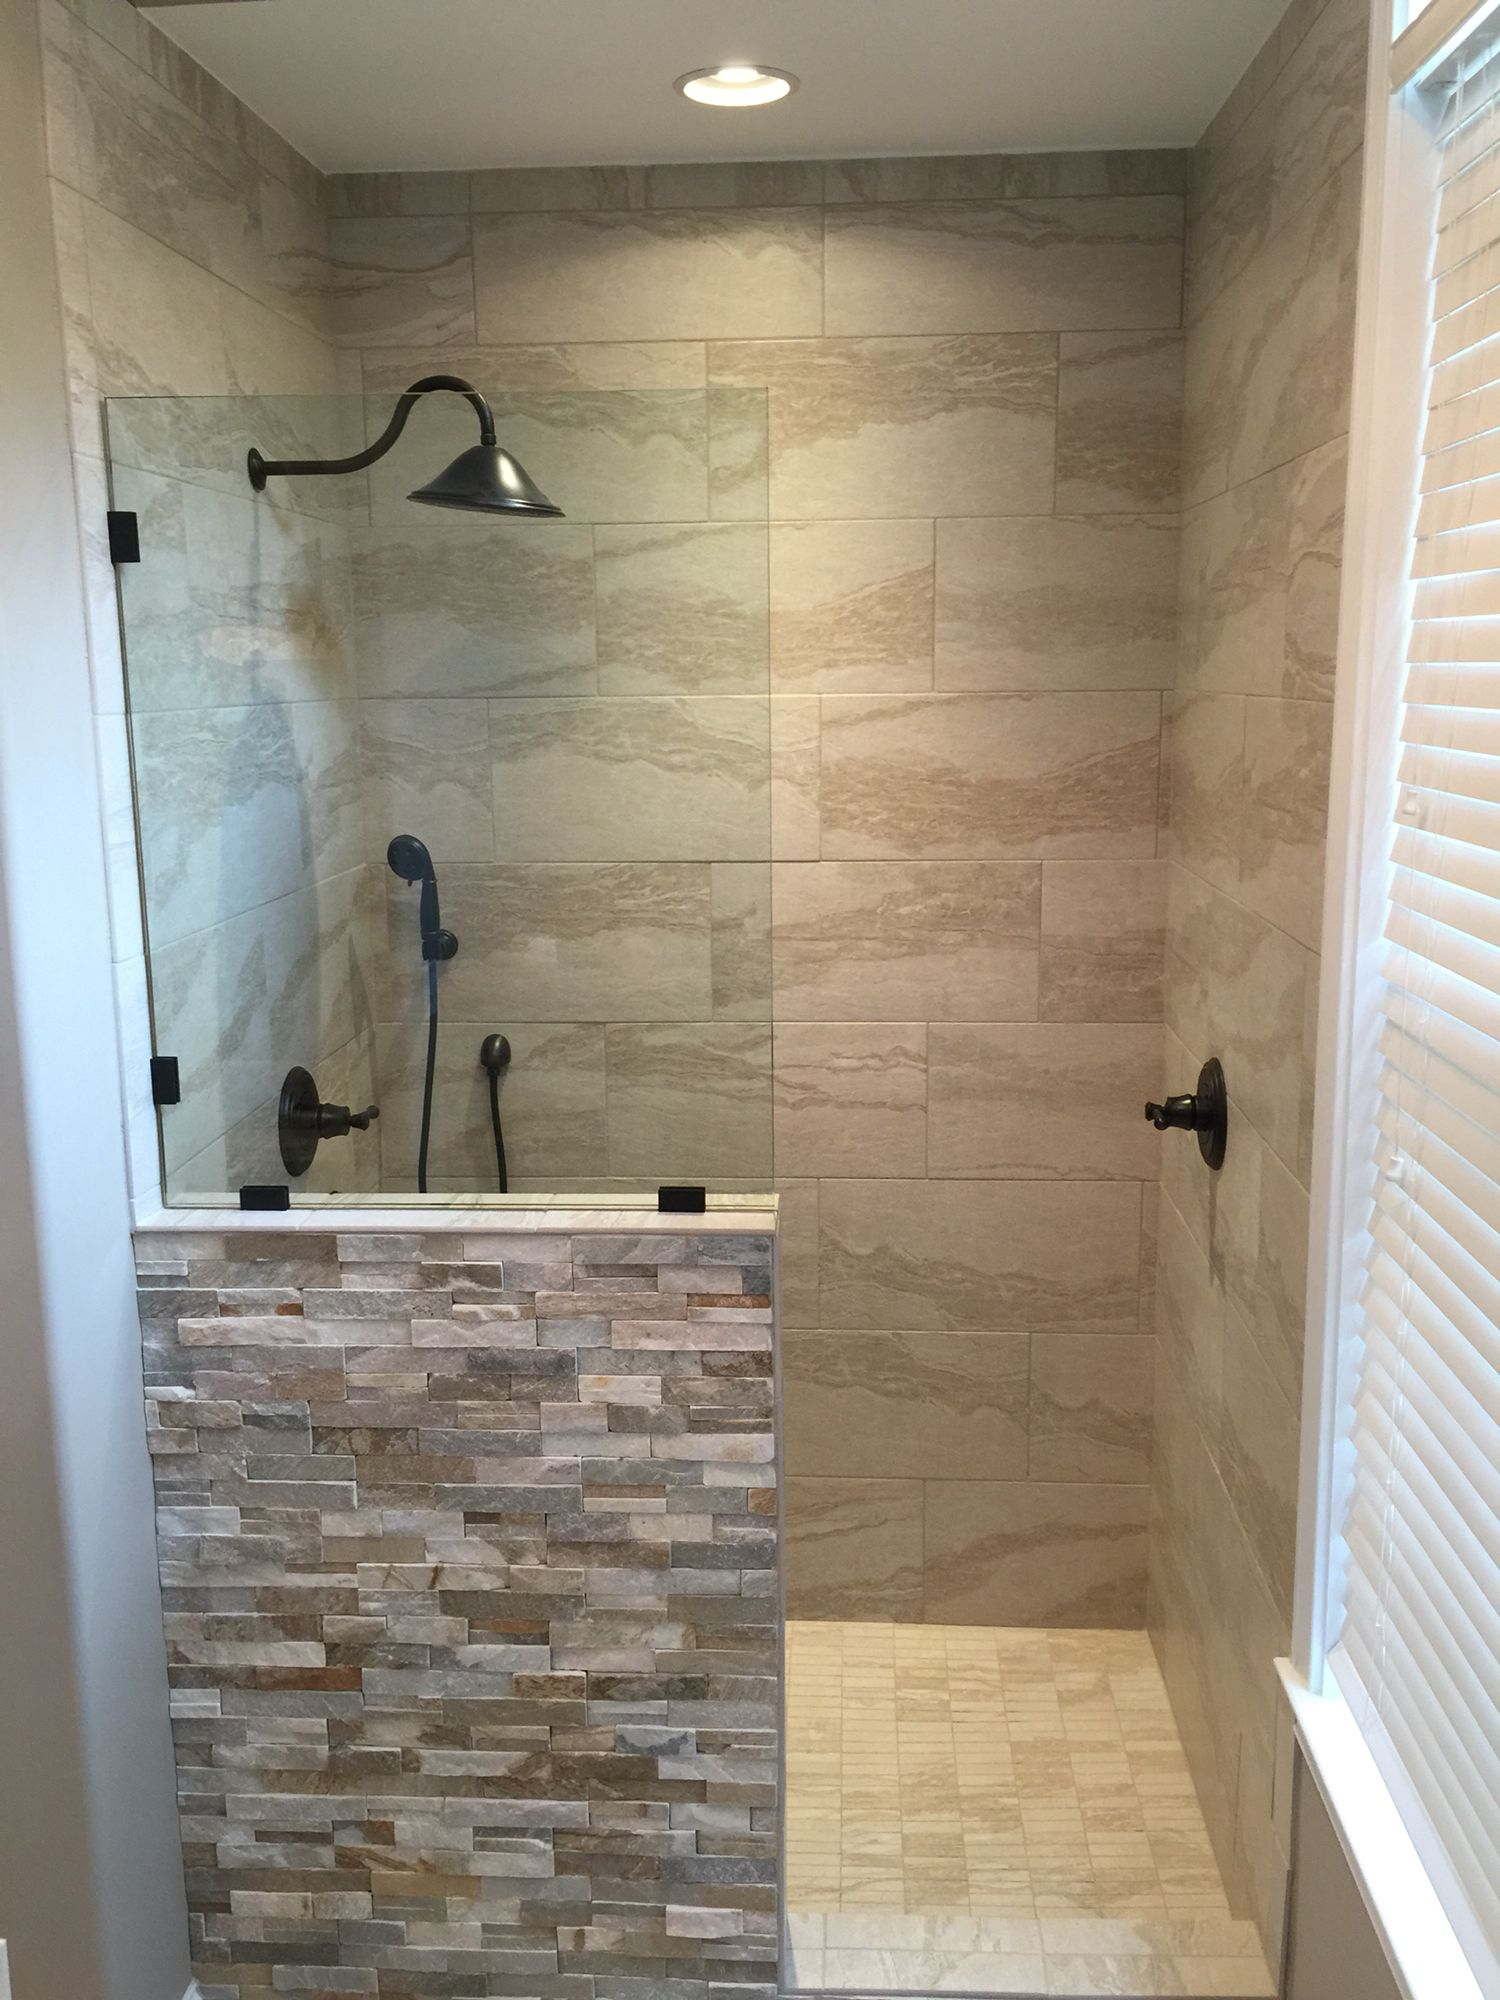 Remodel Bathroom Shower Design Of The Doorless Walk In Shower Shower Tiles Doors And